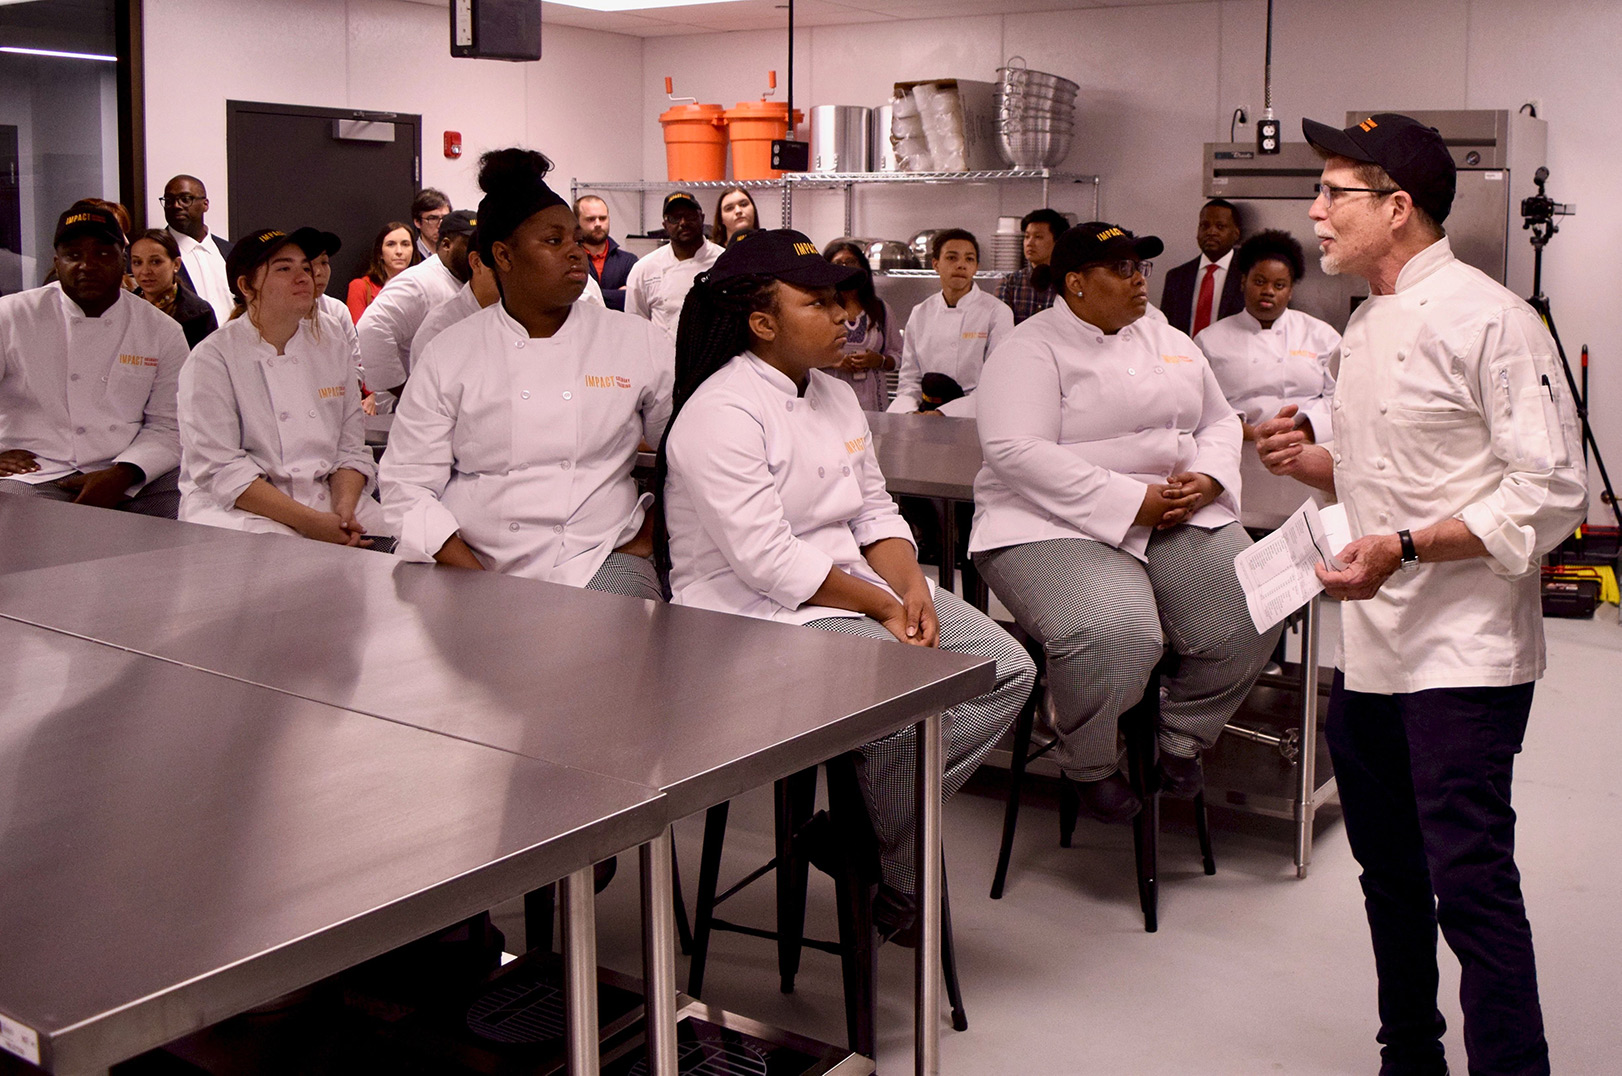 Rick Bayless with Students